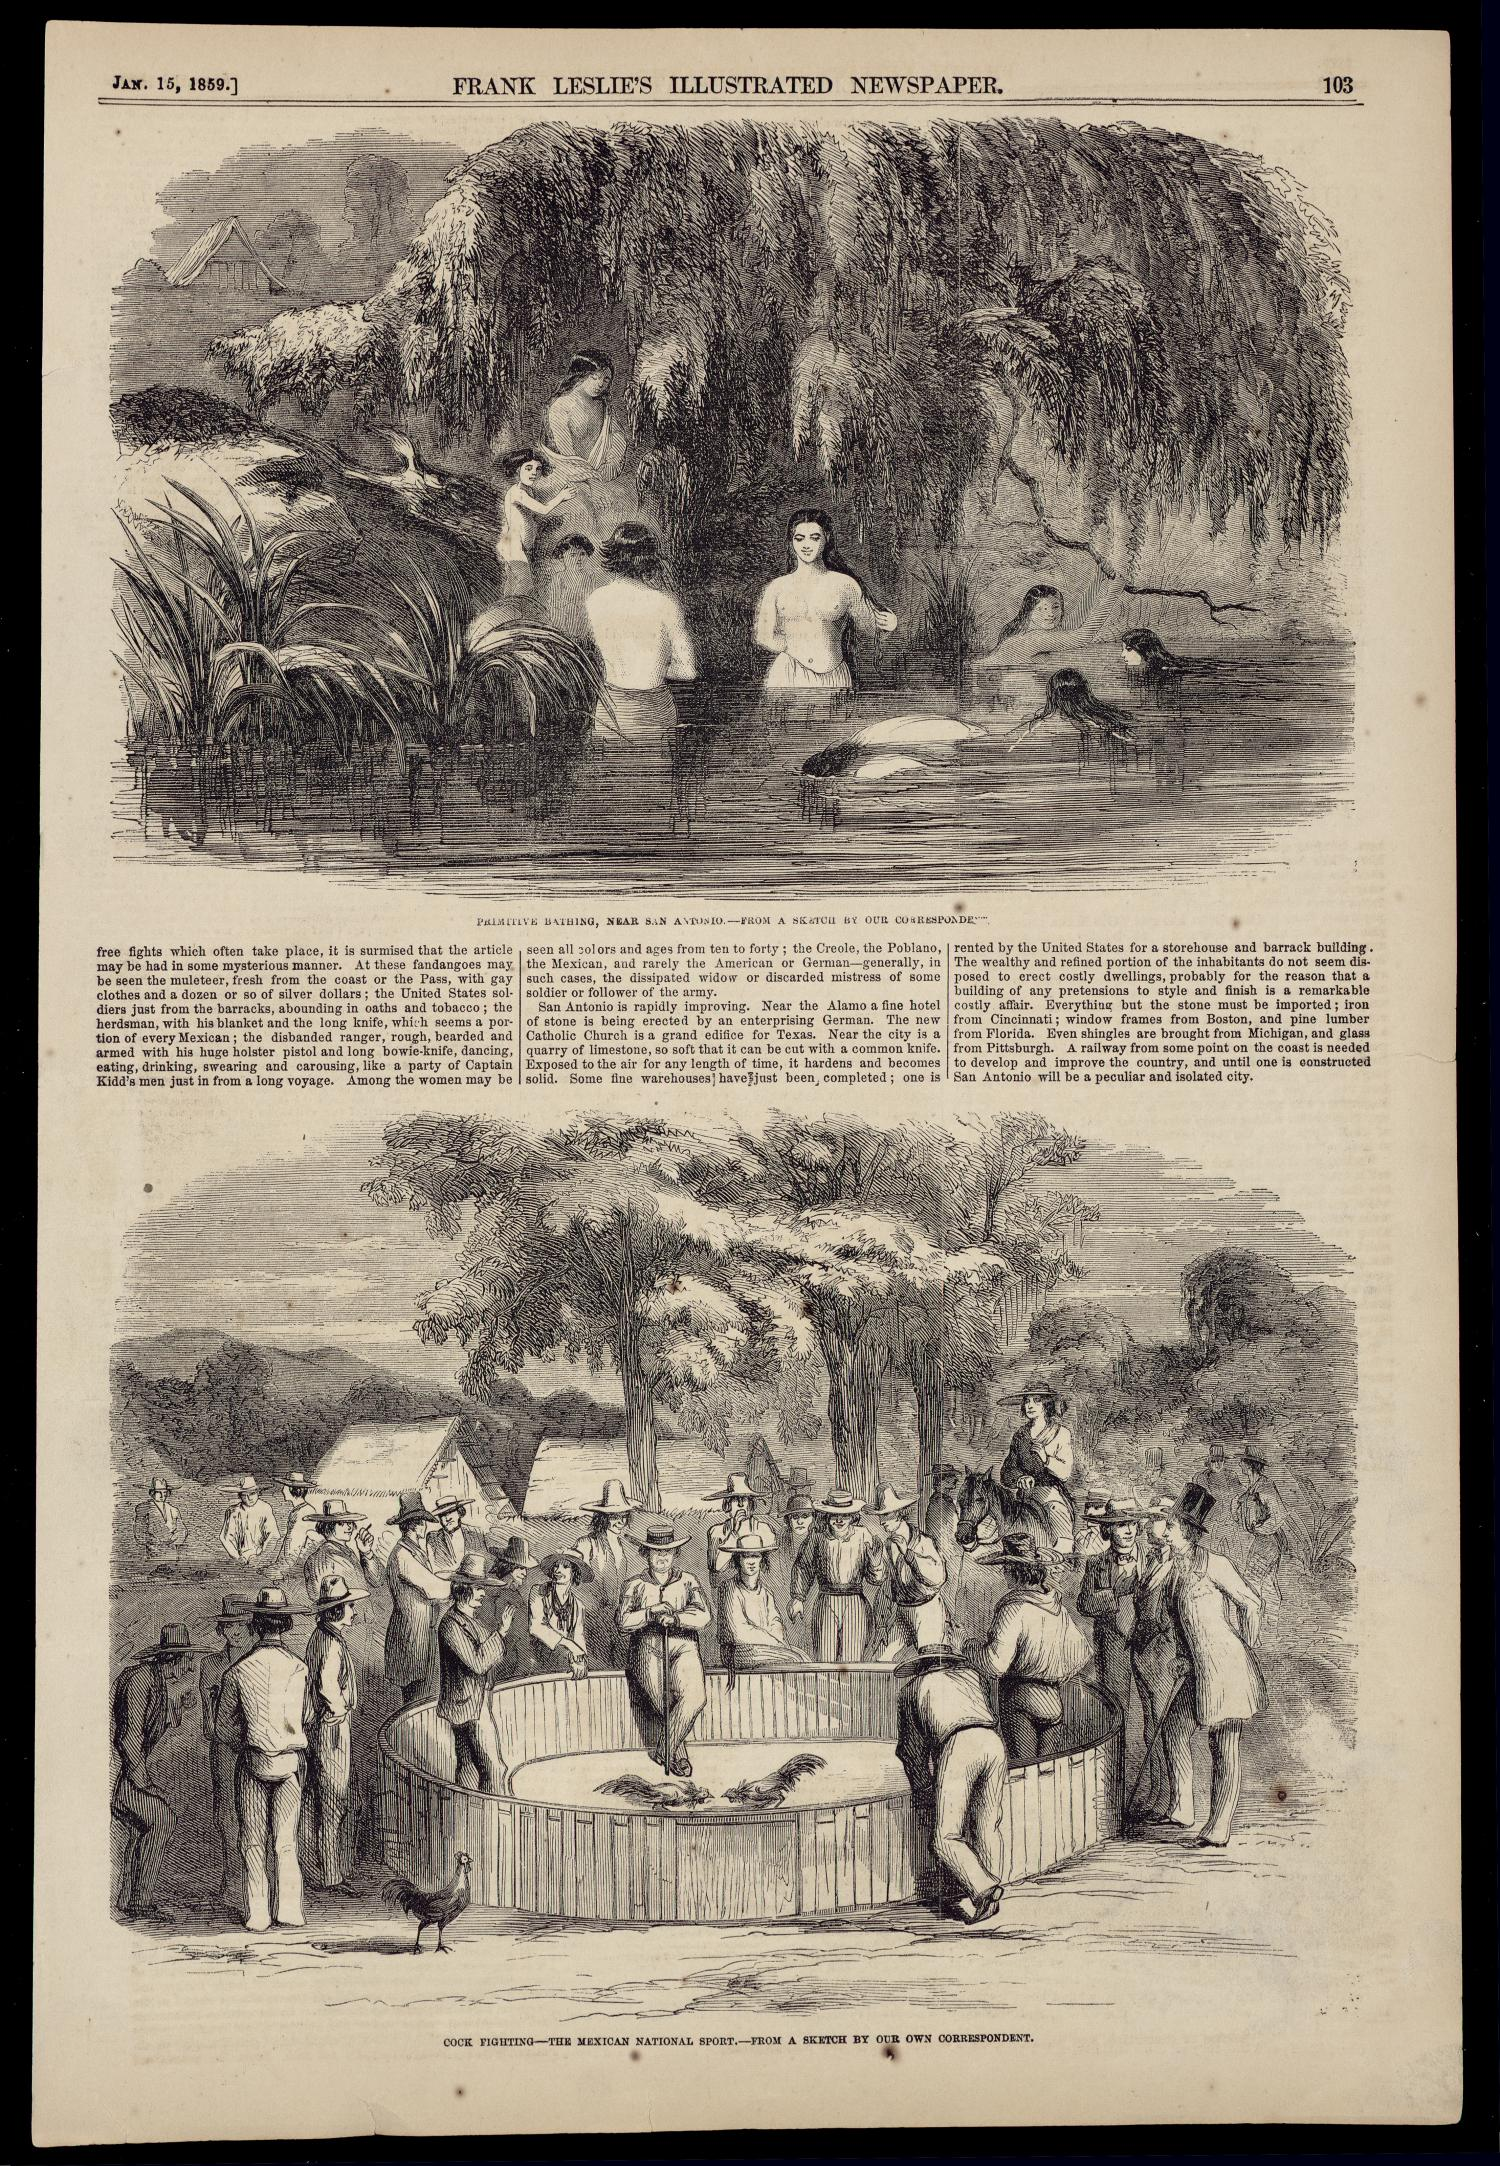 Frank Leslie S Illustrated Newspaper Page 103 The